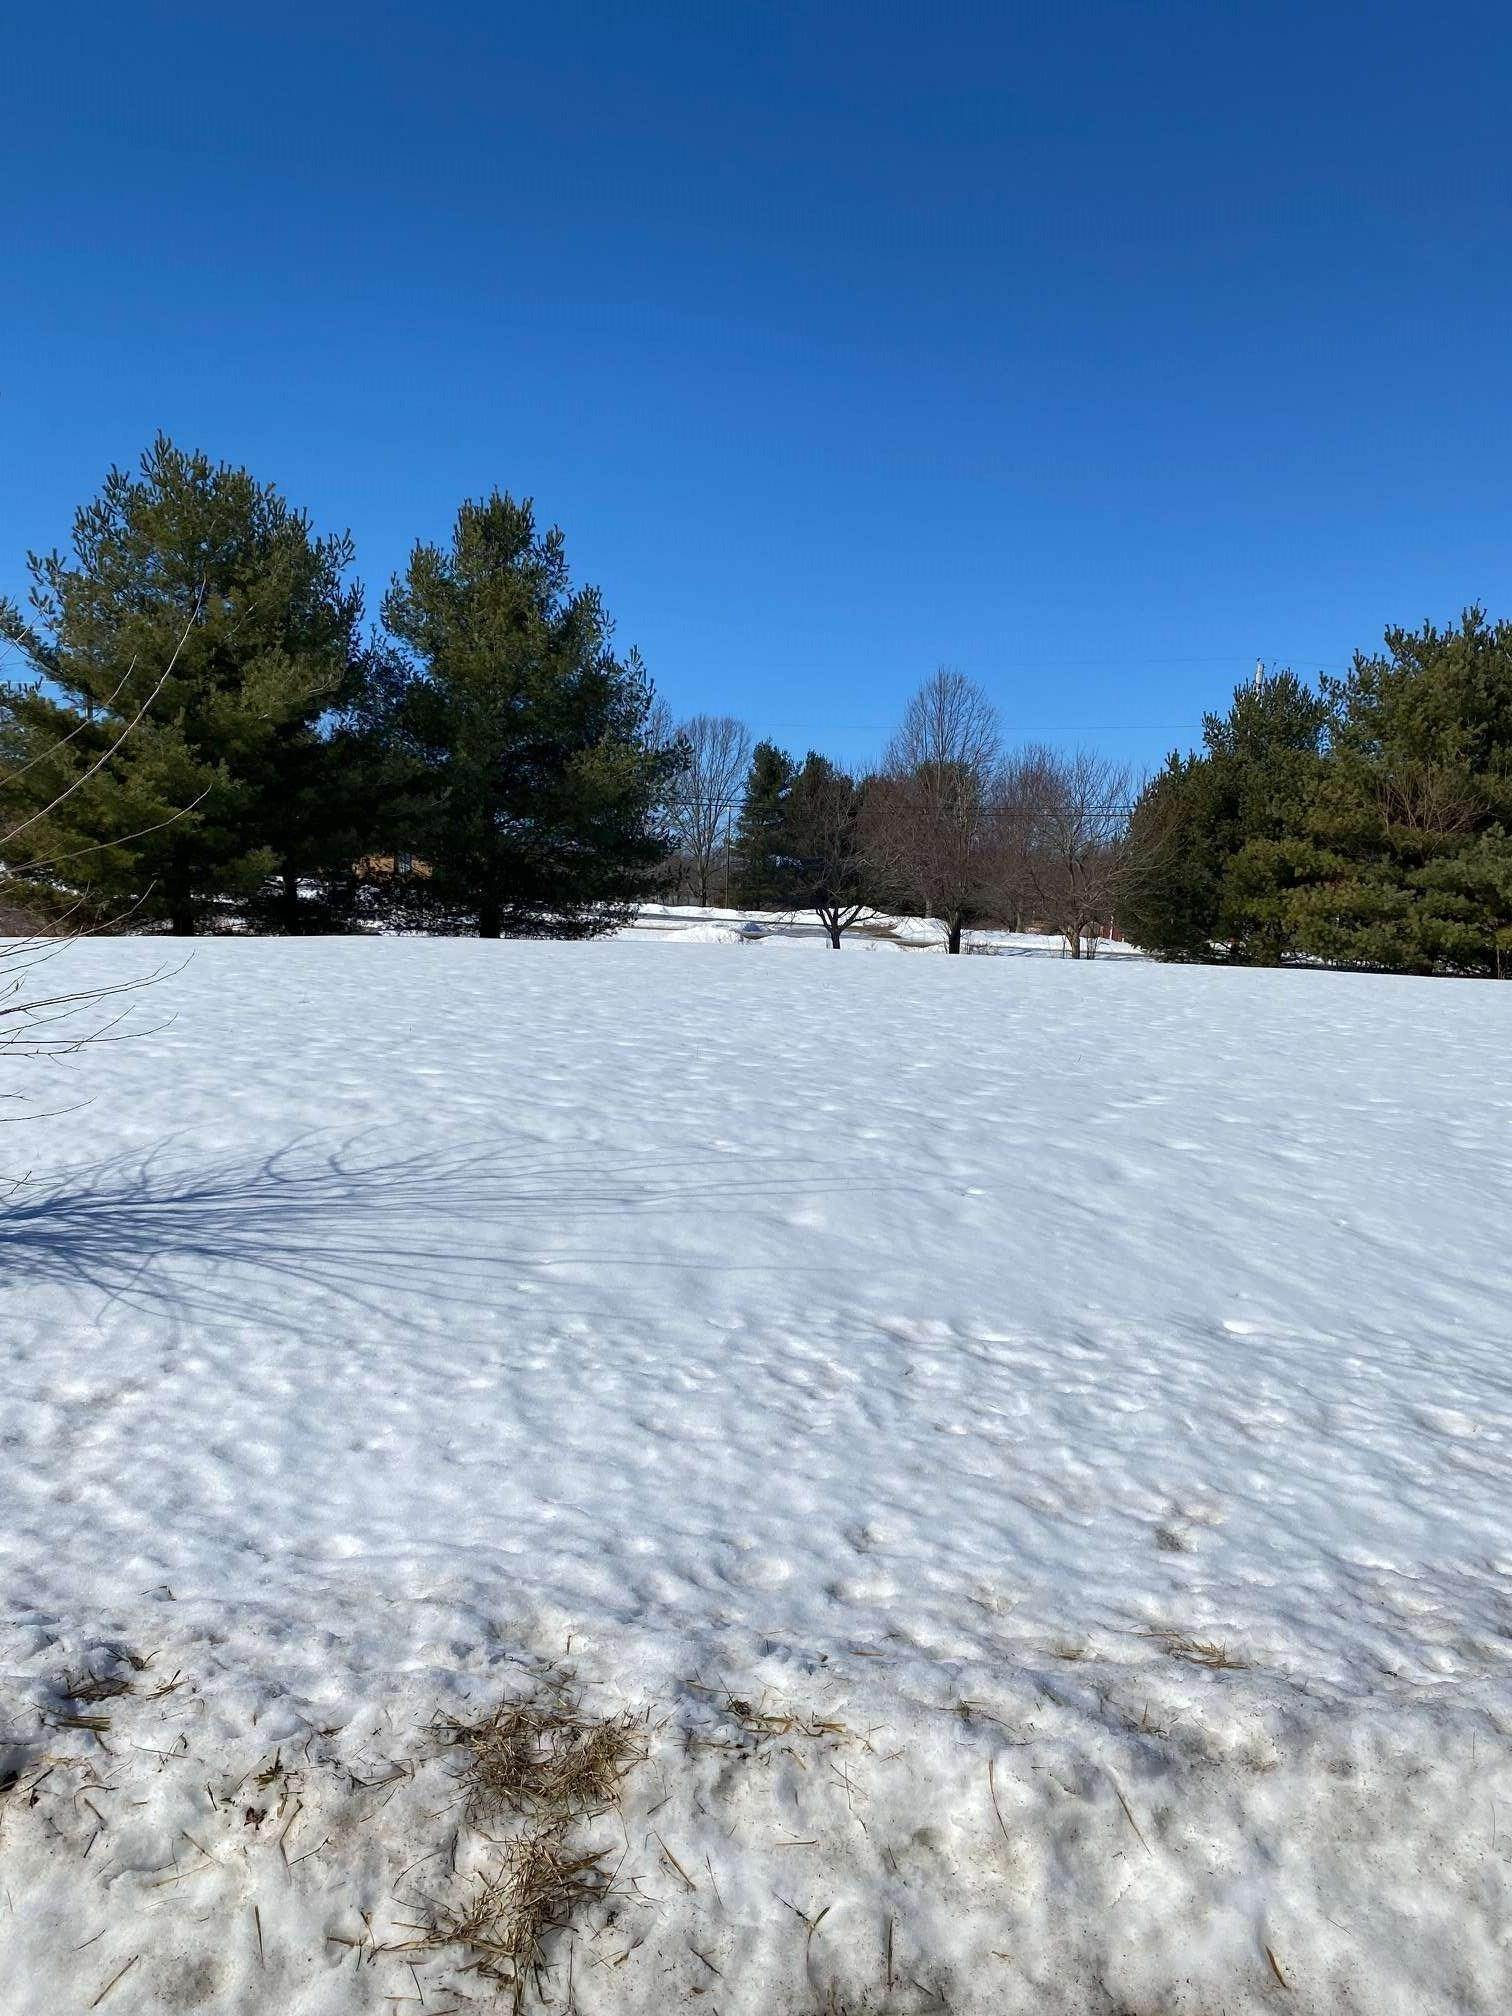 Residential Lots & Land for Sale at TBD Northern Acres lot 24 Ladoga, Indiana 47905 United States